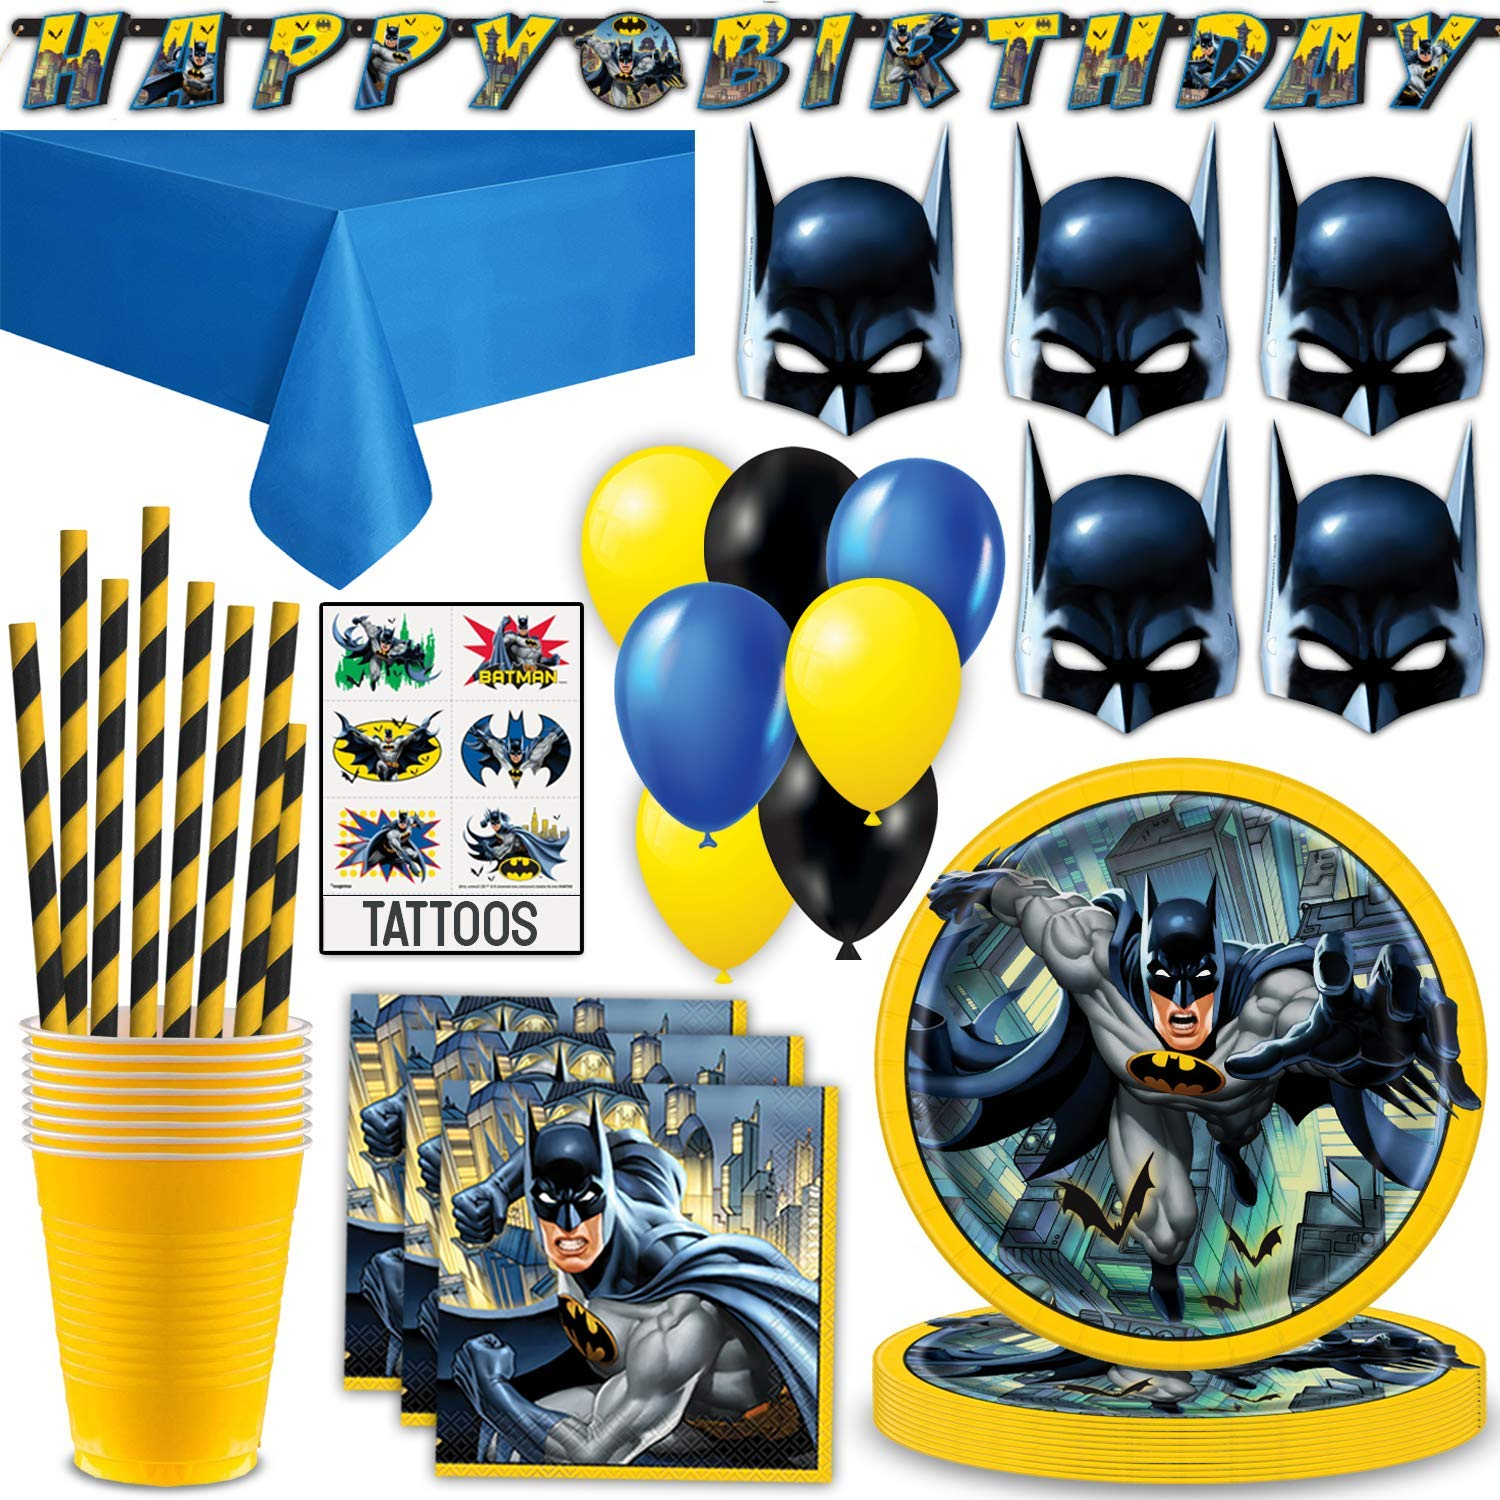 Batman Party Supplies for 16 - Plates, Napkins, Cups, Straws, Table Cover, Masks, Happy Birthday Banner, Balloons, Temporary Tattoos - Great Decorative Birthday Set by HeroFiber